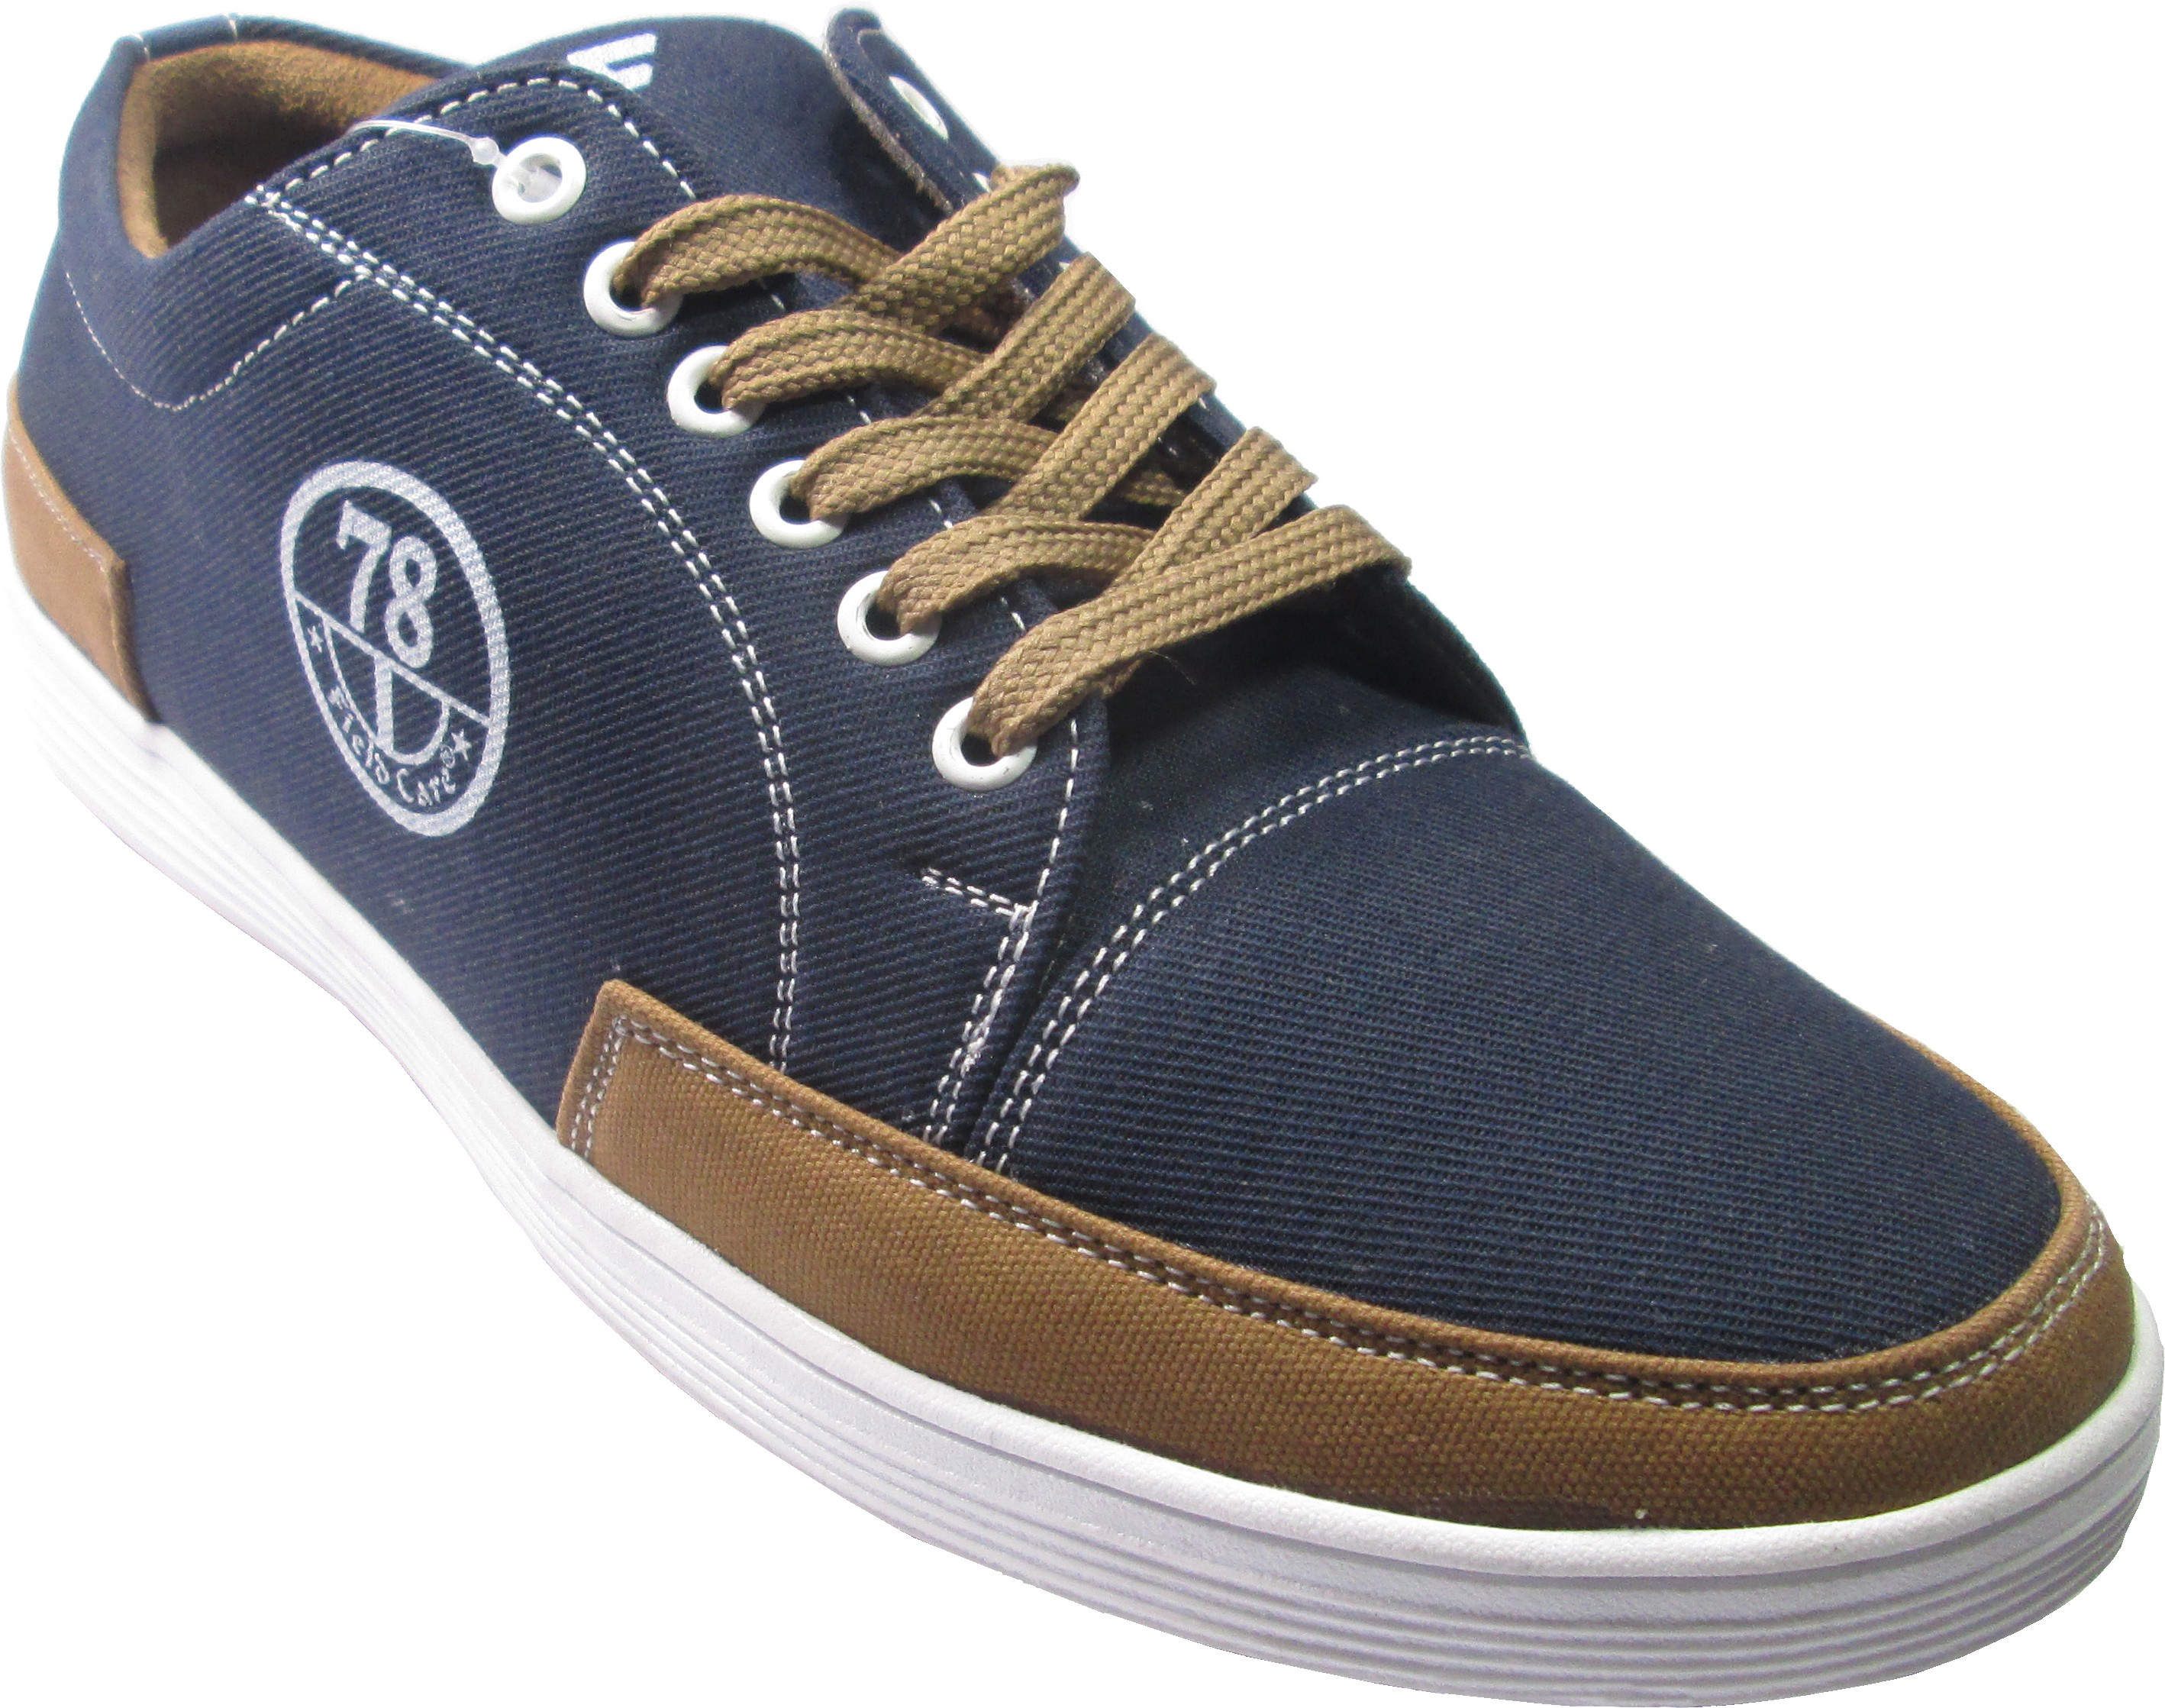 Field Care 7878 Canvas Shoes